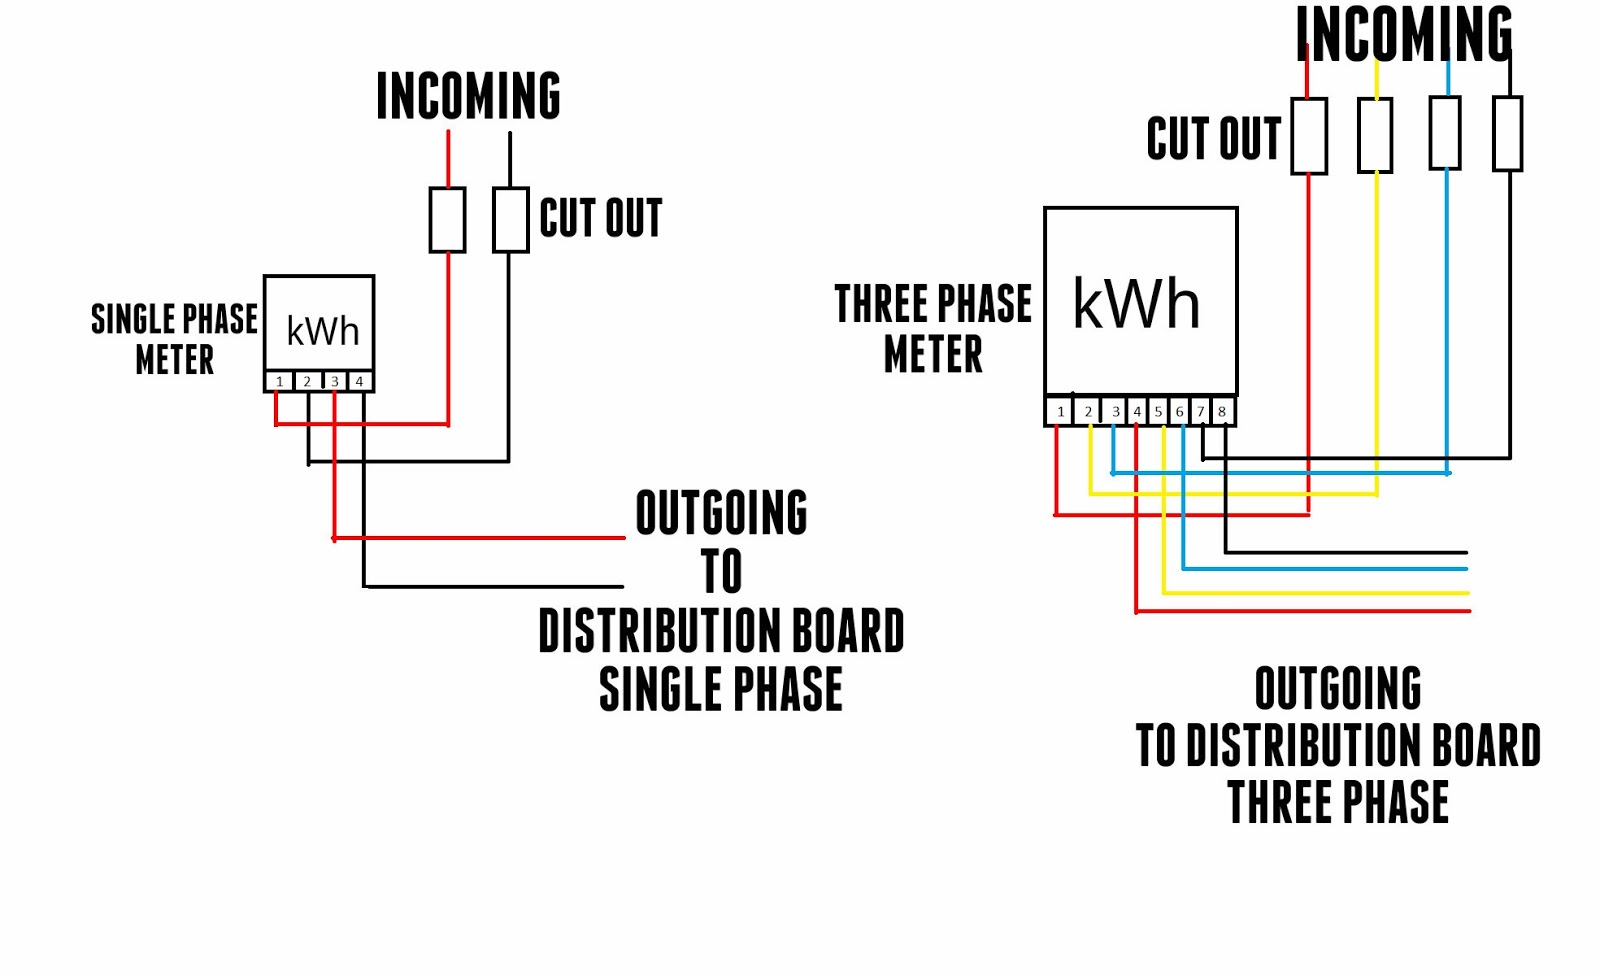 The World Through Electricity: Kilo Watt Hour Meter (kWh